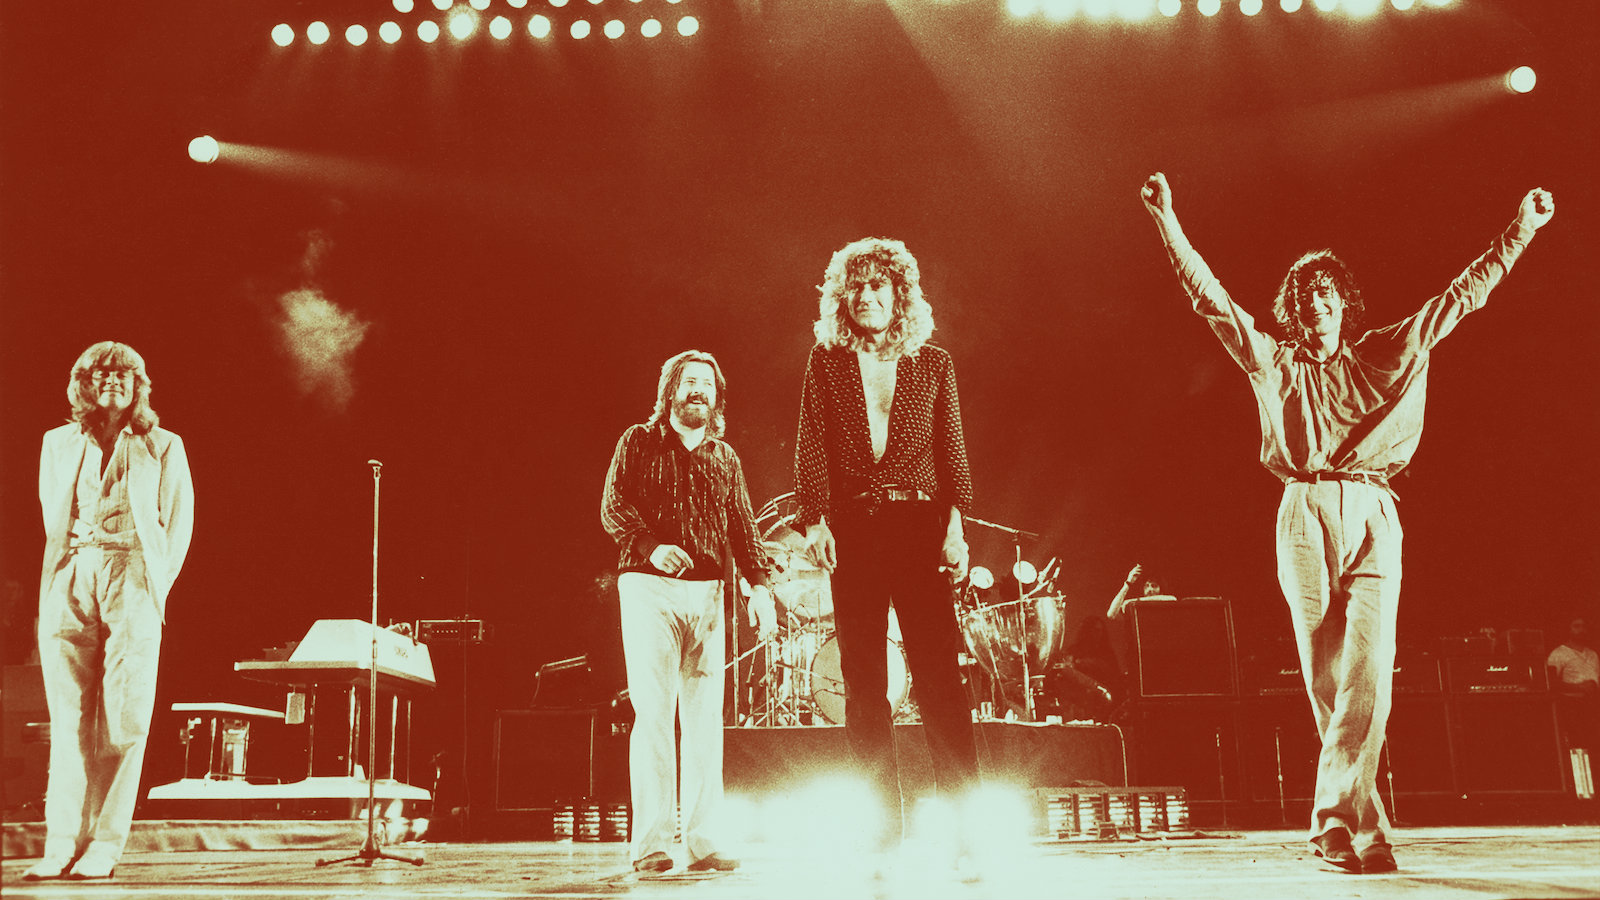 More than anyone within Led Zeppelin's universe, Page has been the caretaker of the band's legacy